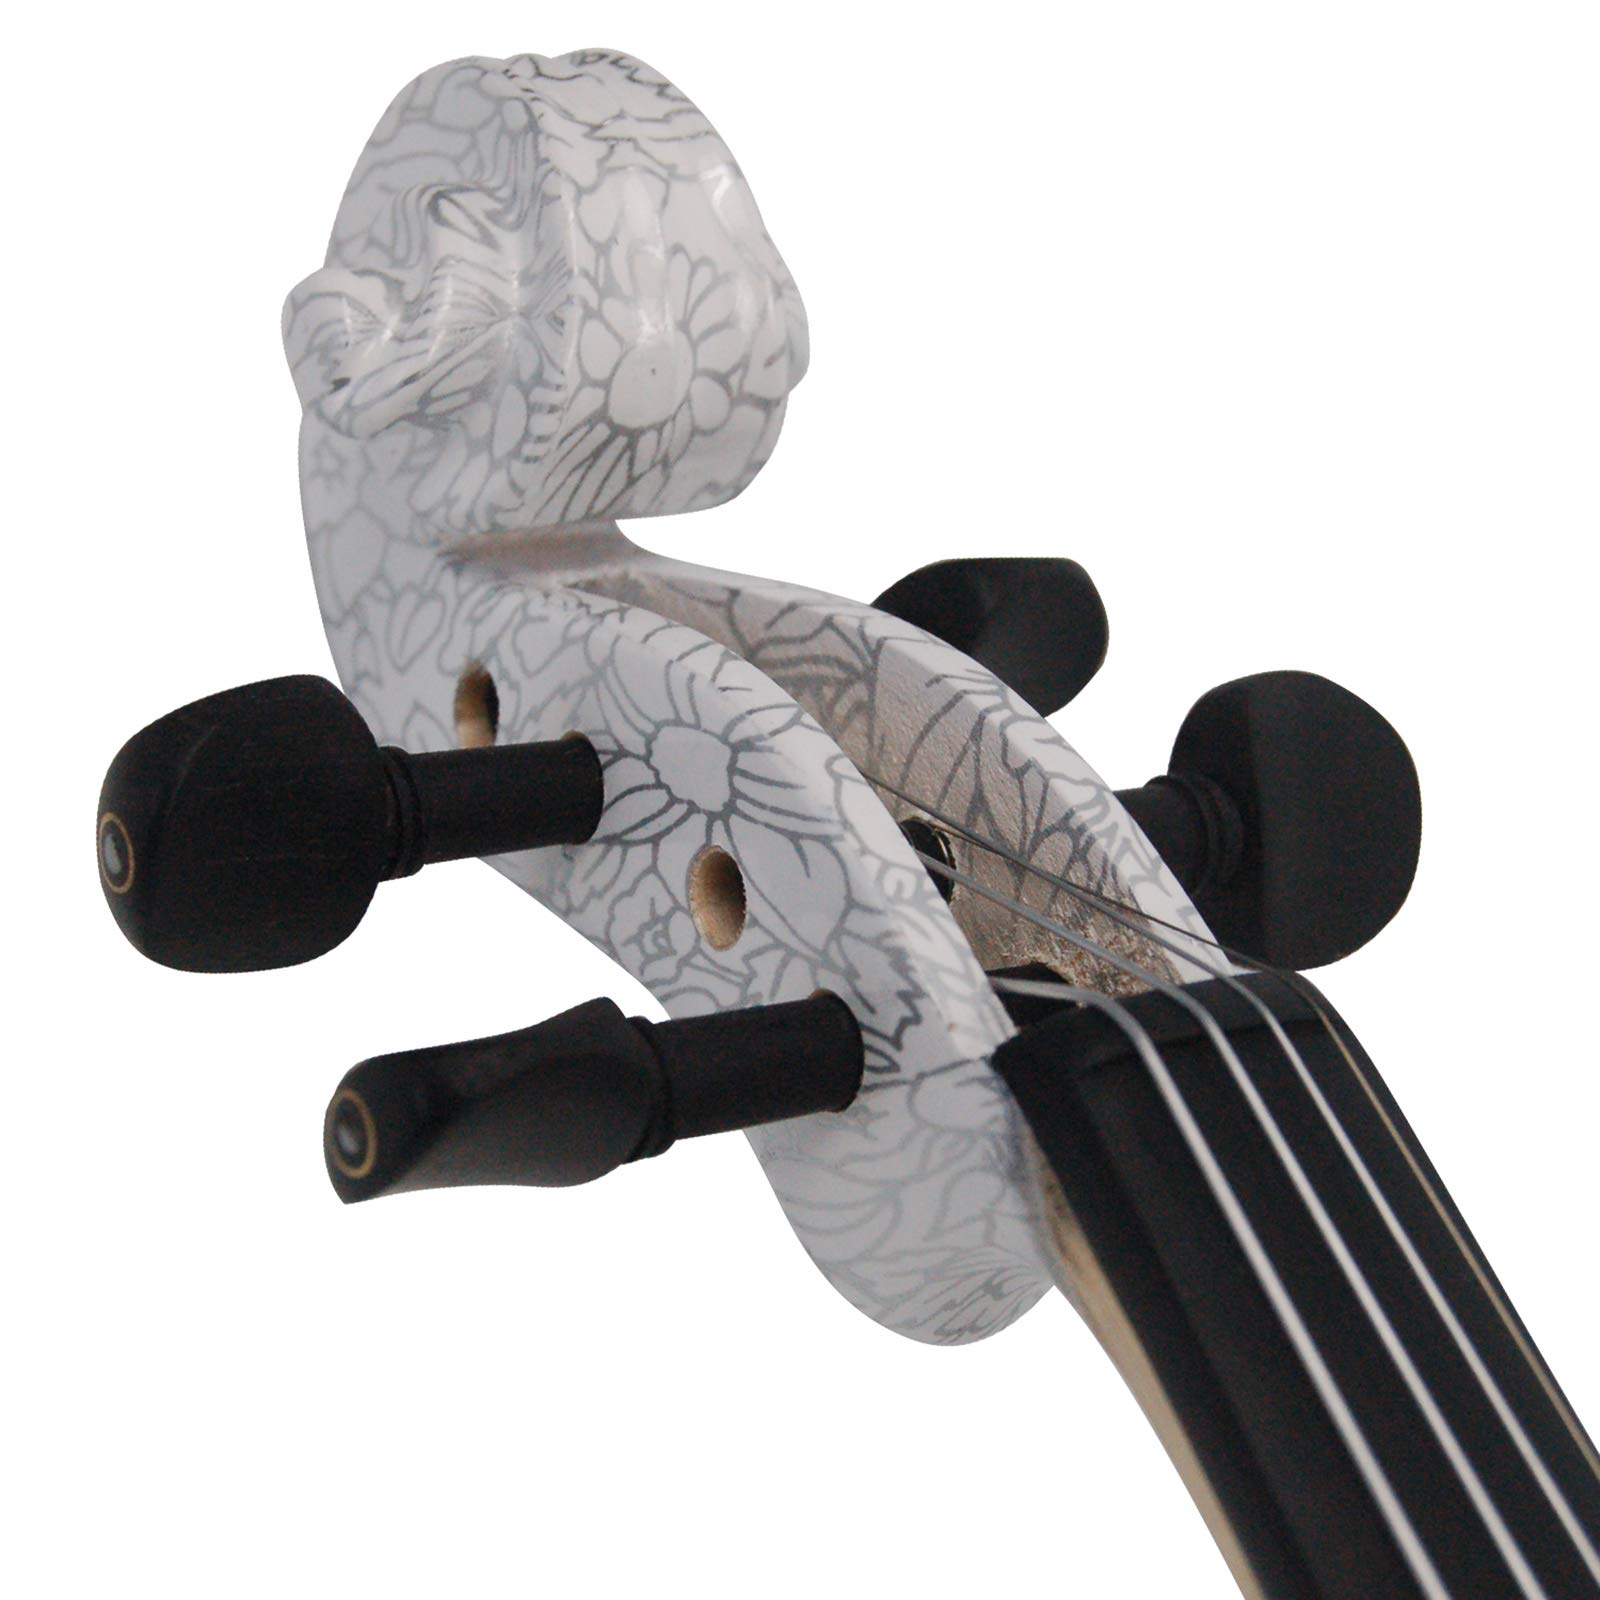 Kinglos 4/4 Butterfly Flower Colored Ebony Fitted Solid Wood Violin Kit with Case, Shoulder Rest, Bow, Rosin, Extra Bridge and Strings Full Size (NHS3002) by Kinglos (Image #6)